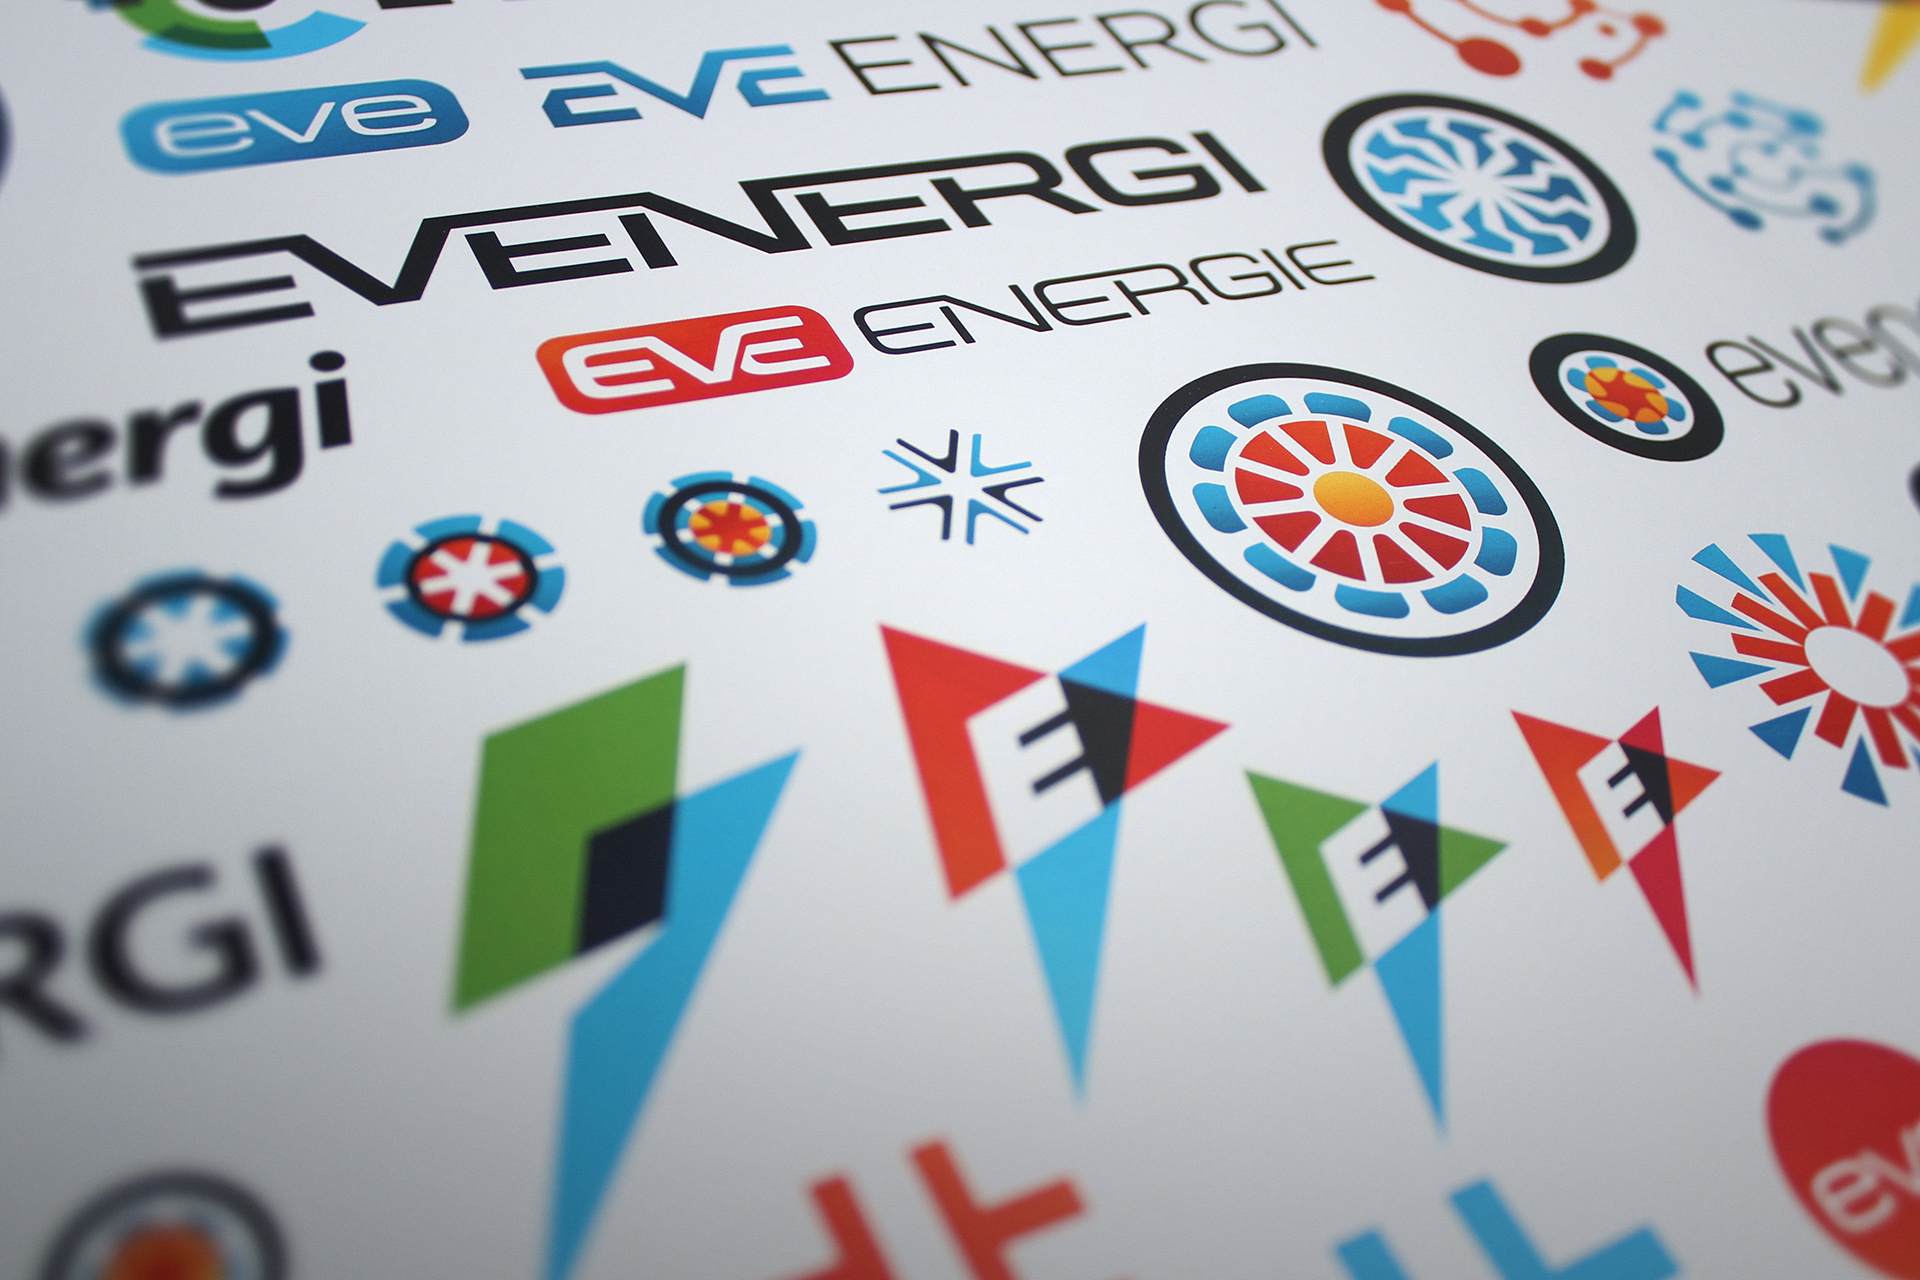 The brand concepts married symbology from both automotive and renewable sectors.